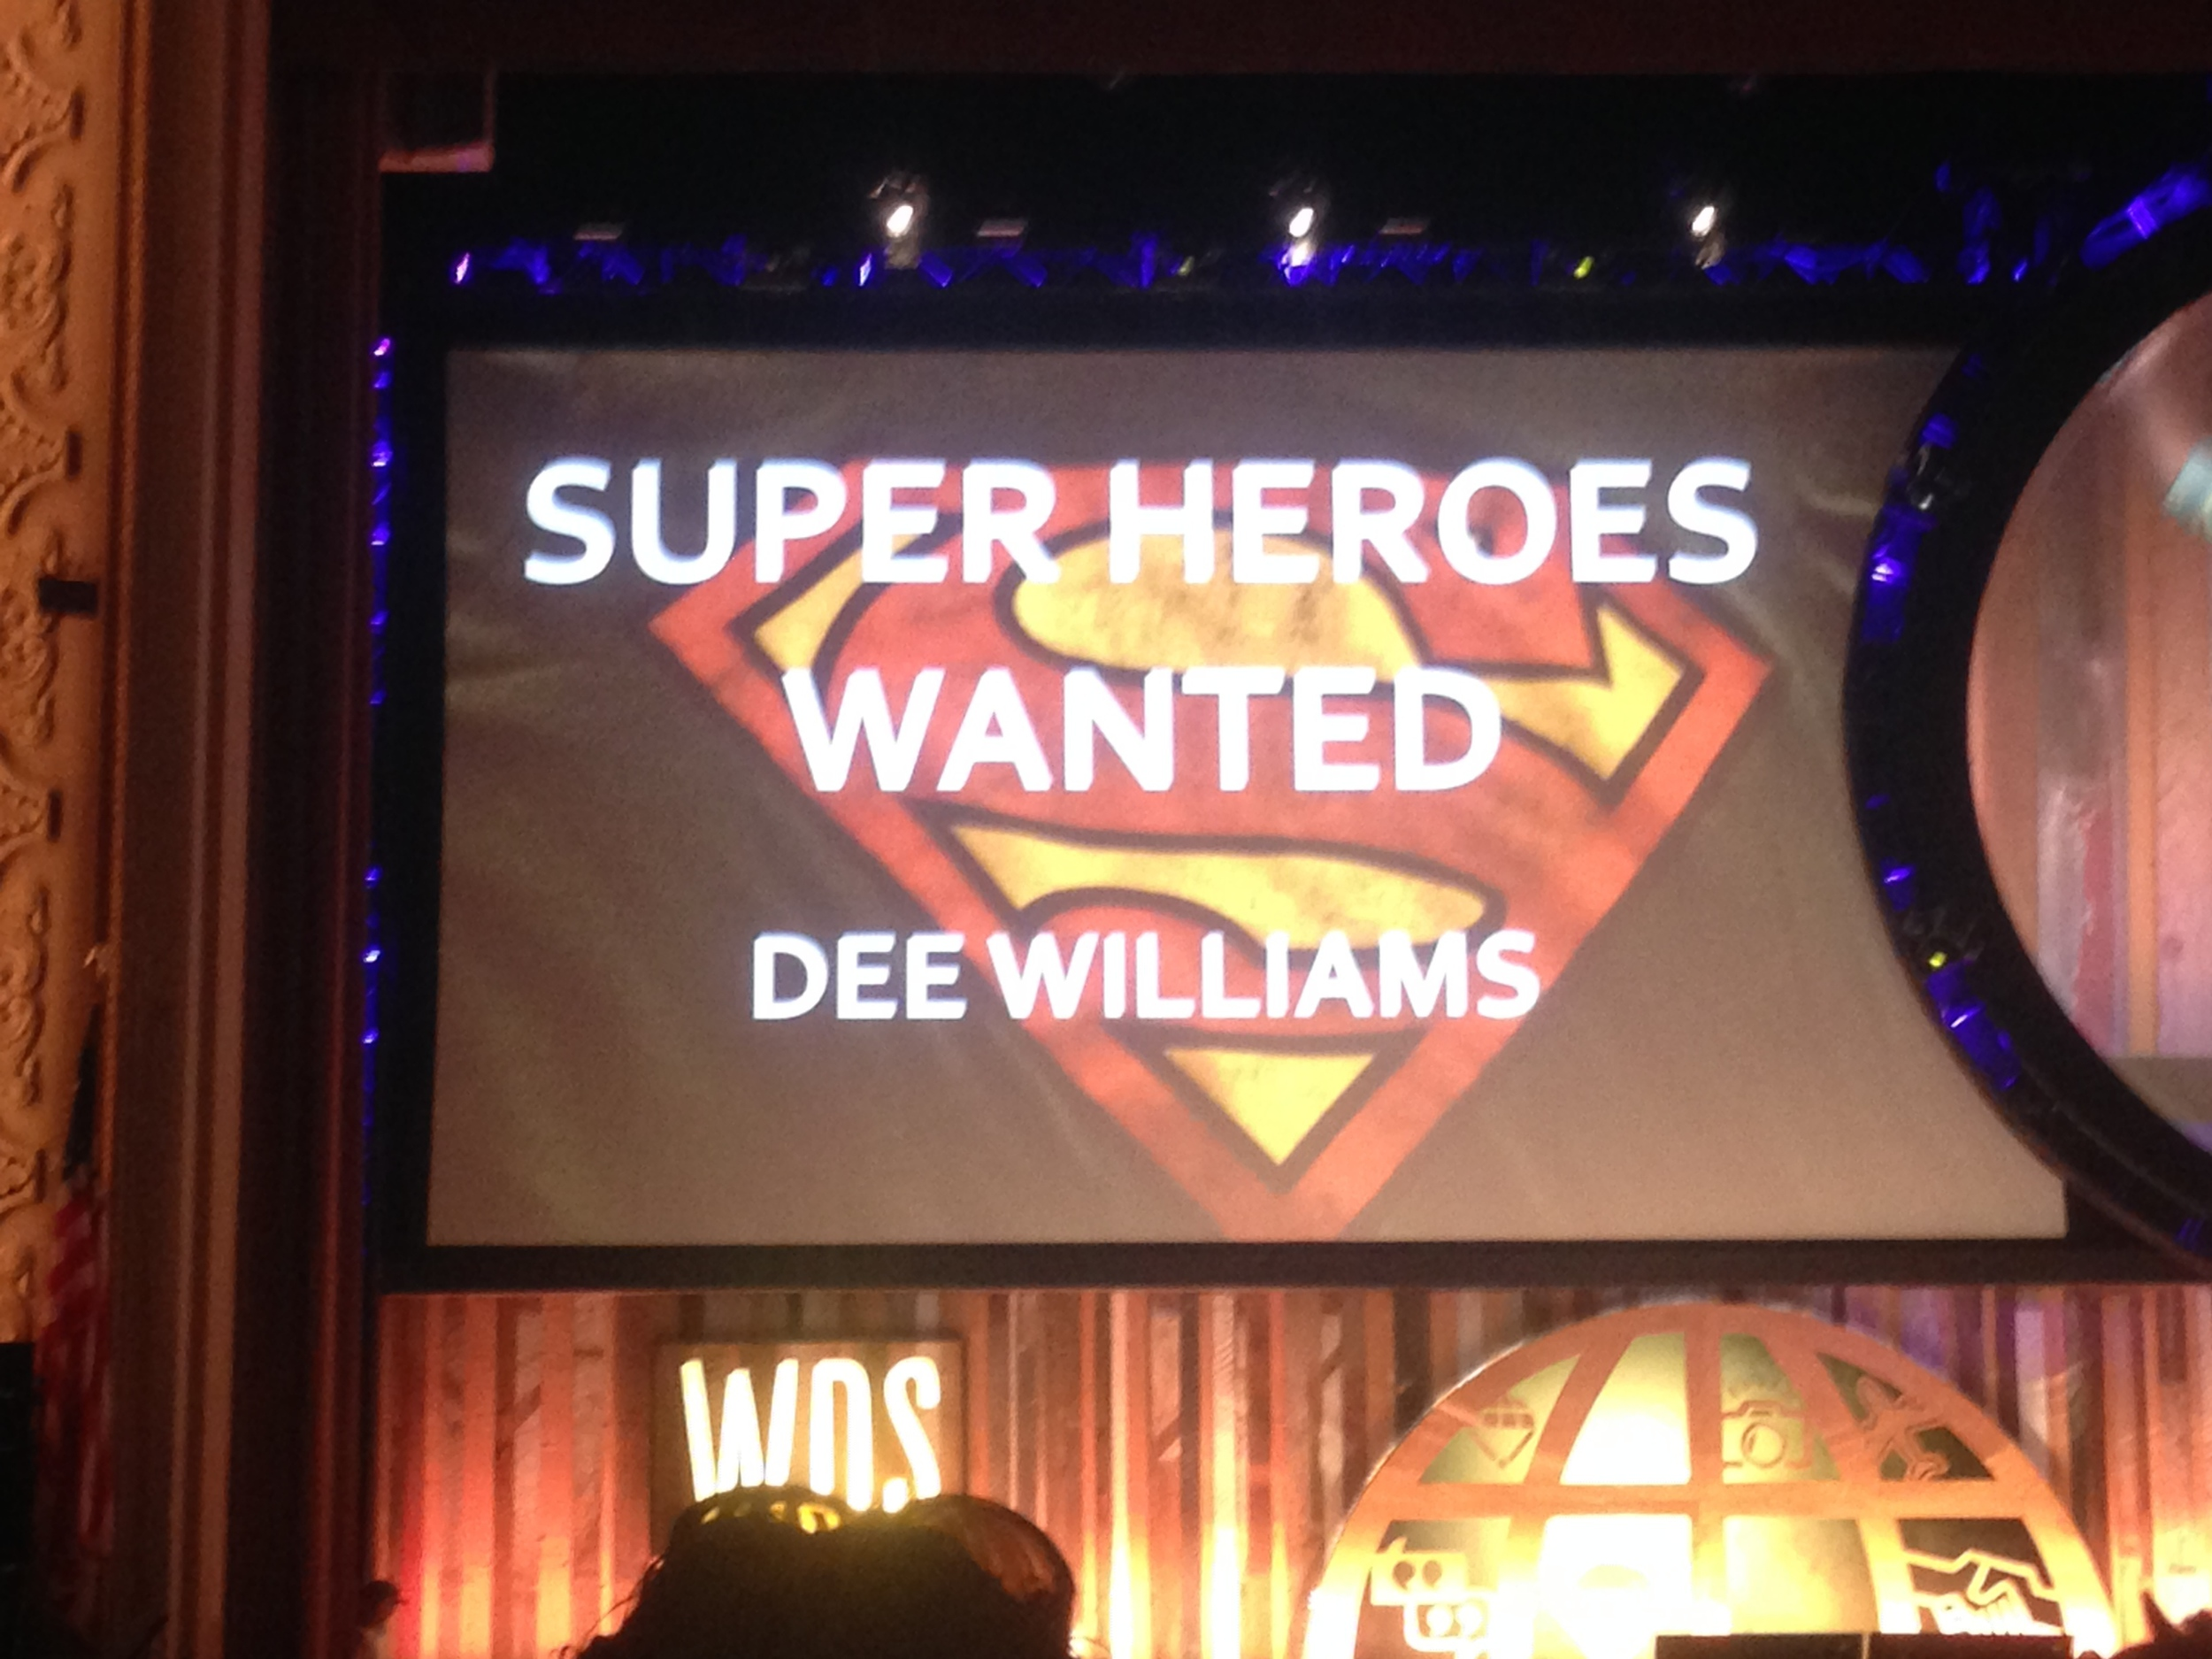 Dee asked us all to imagine ourselves as super heros to make our lives and those of others just a little bit better. The talk giveaway? We each received our own personal invisible cape. Mine fits perfectly.